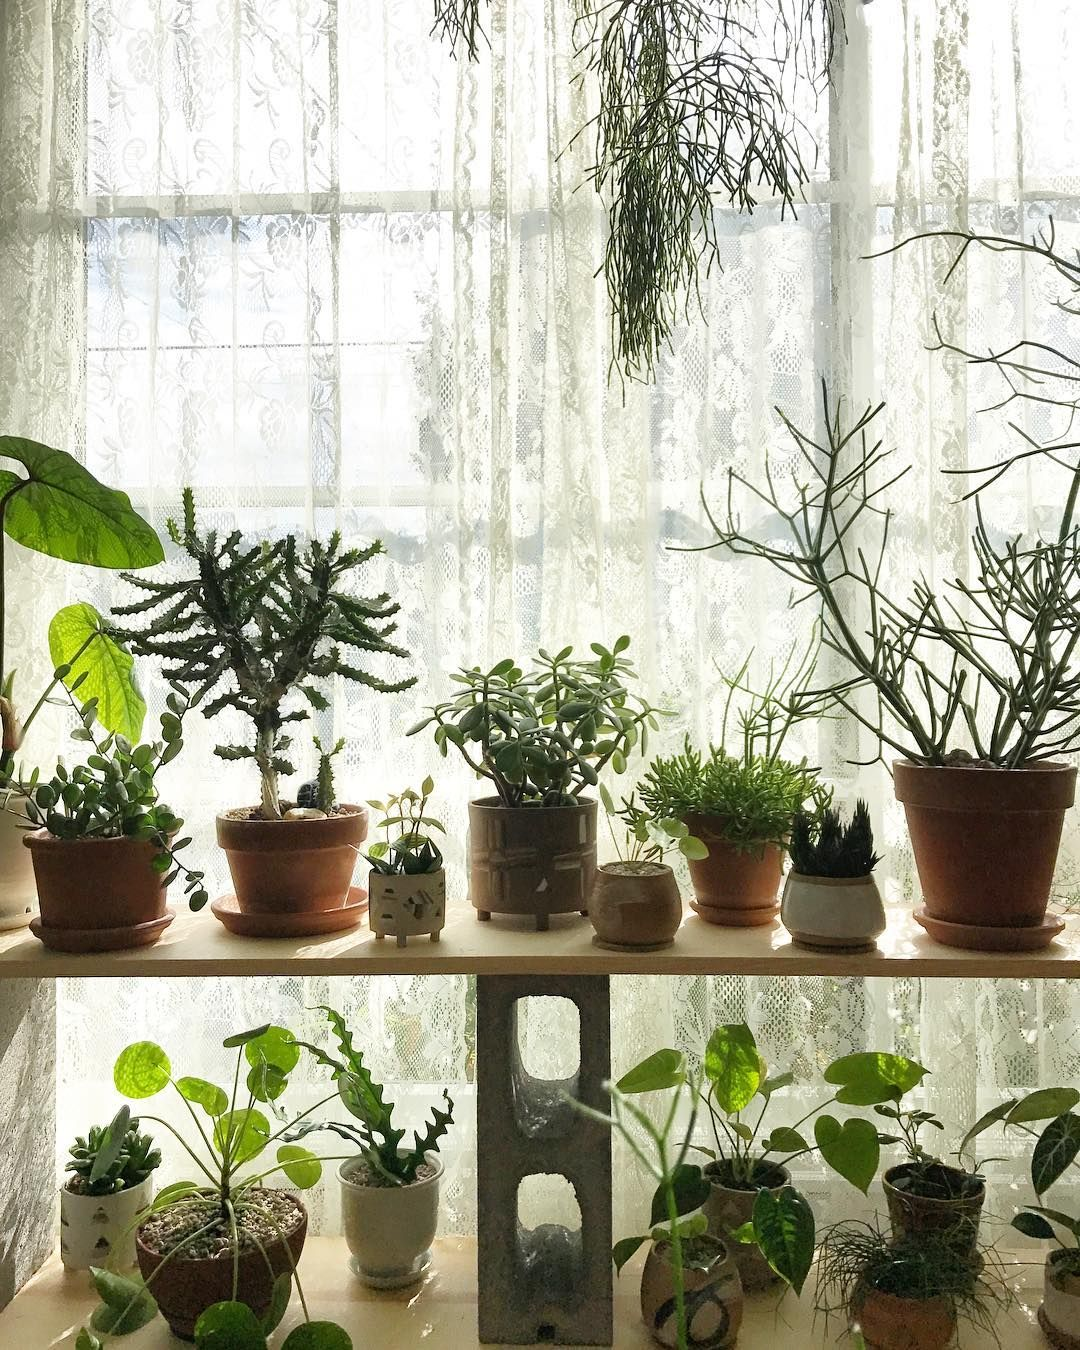 Buy These 6 Bedroom Plants and Get the Best Sleep Ever